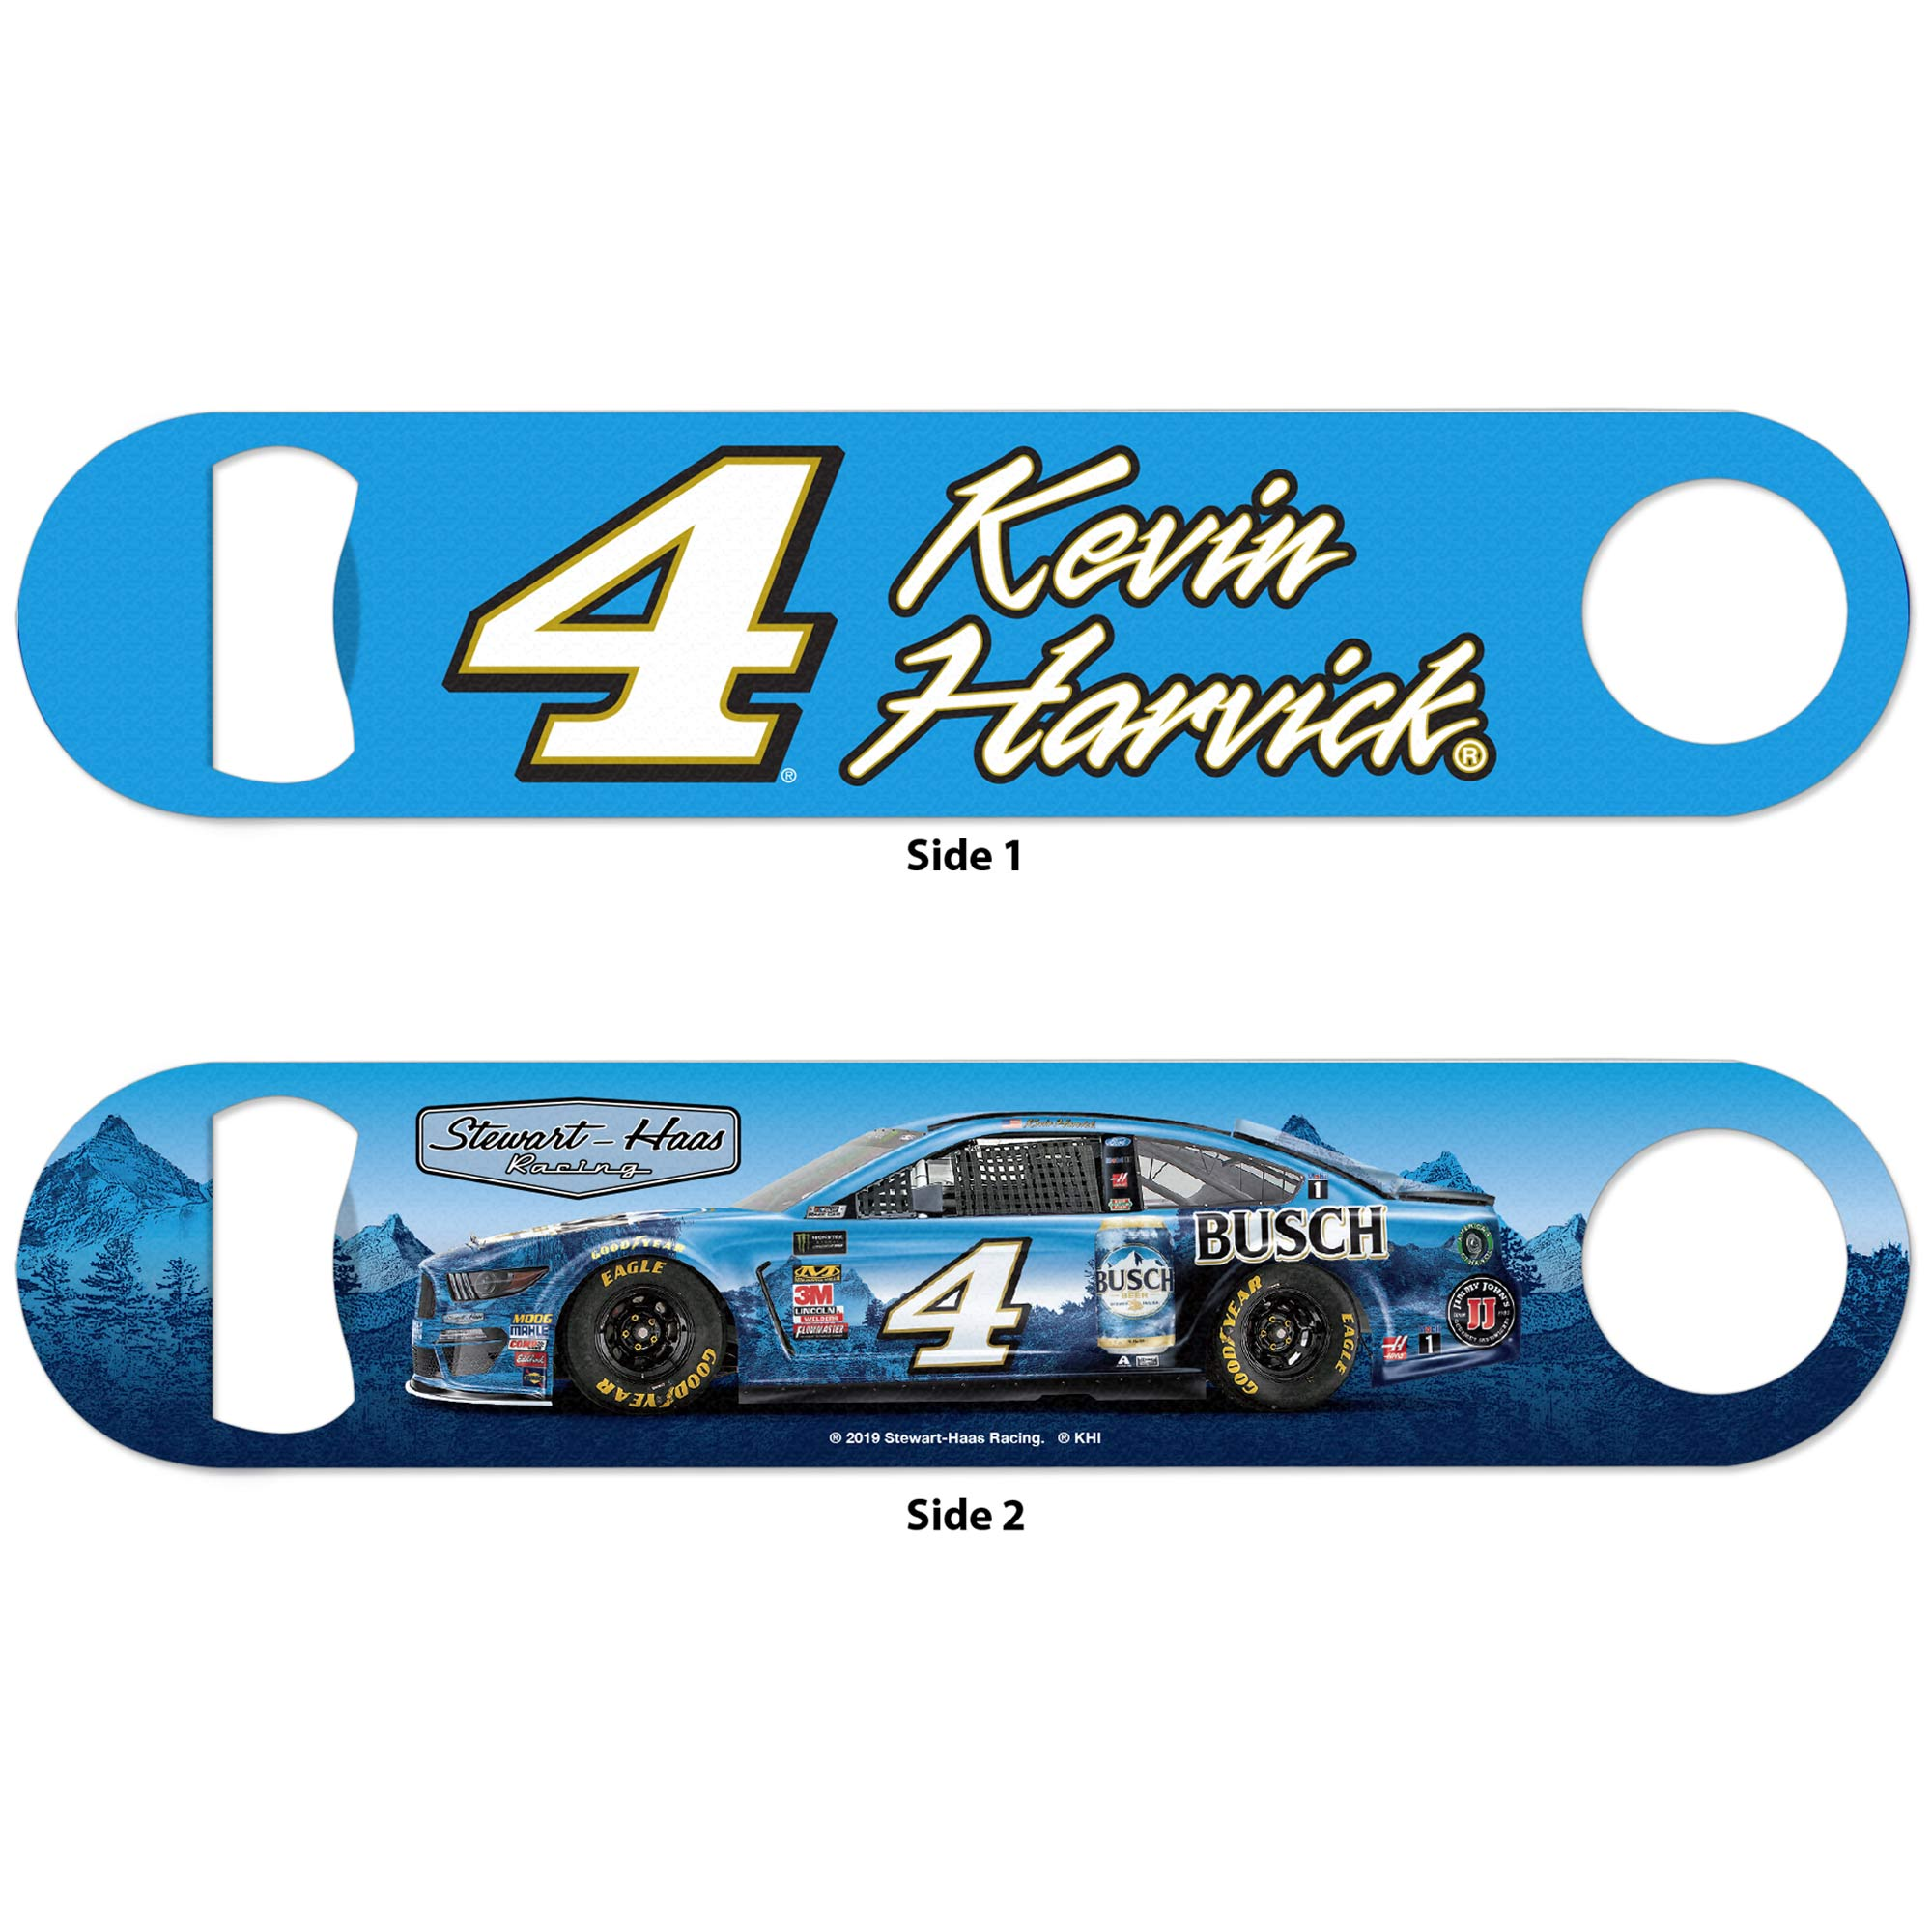 Kevin Harvick WinCraft Double-Sided Bottle Opener - No Size